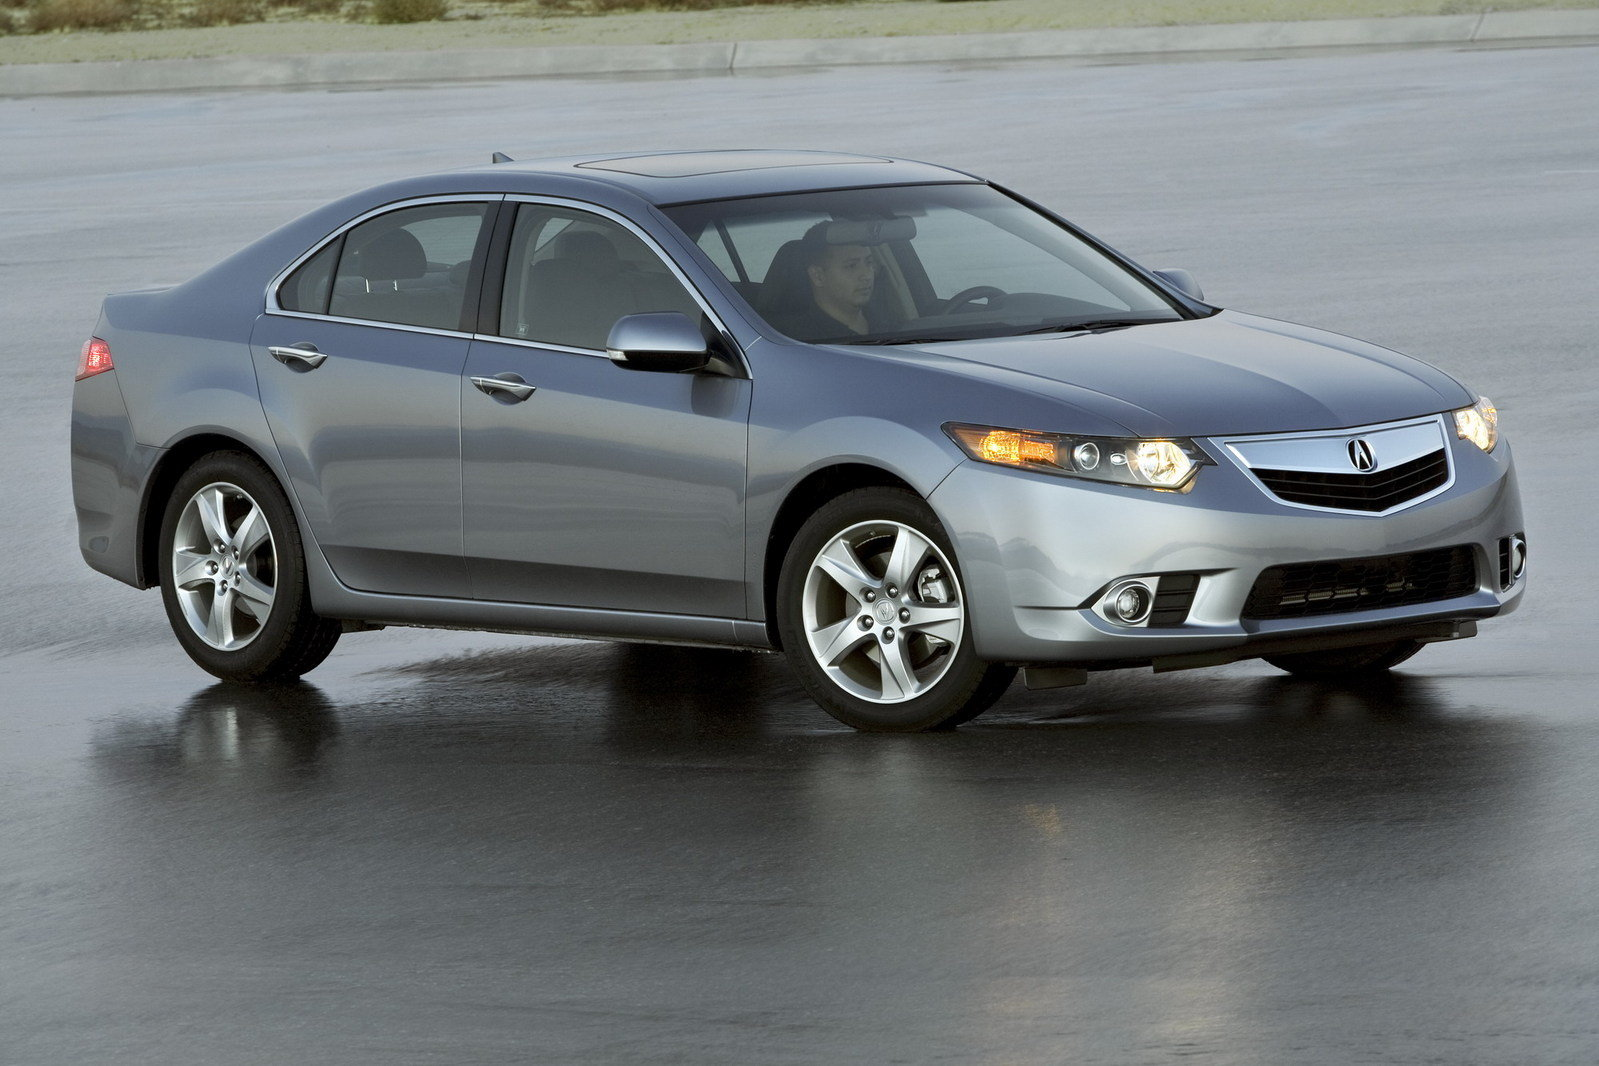 2011 Acura TSX Sedan Review - Top Speed